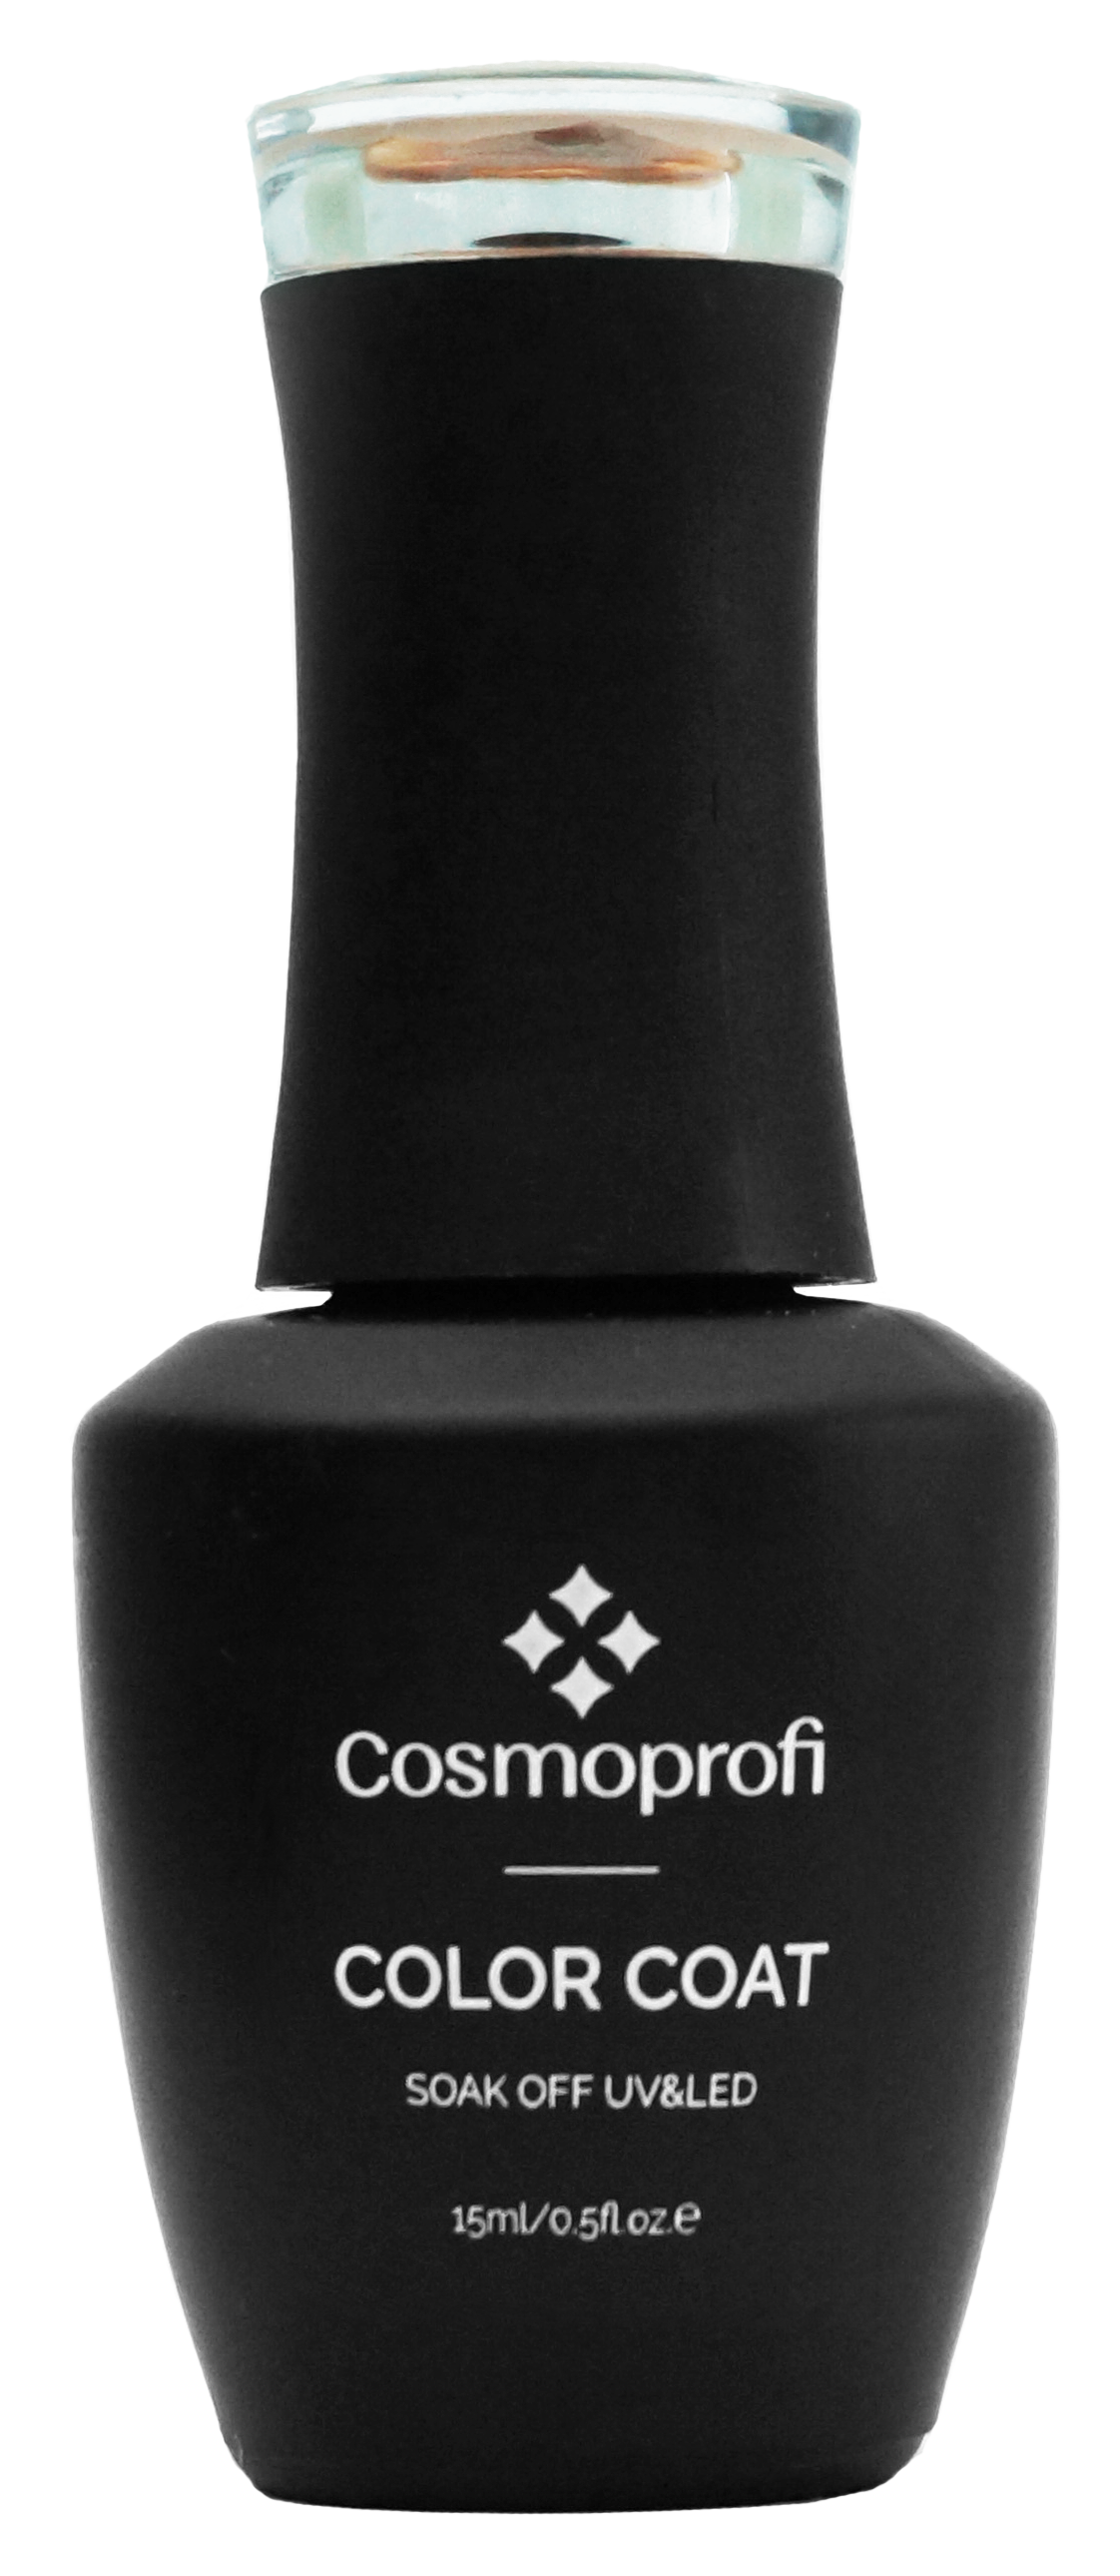 Гель-лак Cosmoprofi, Color coat № 503, 15 мл